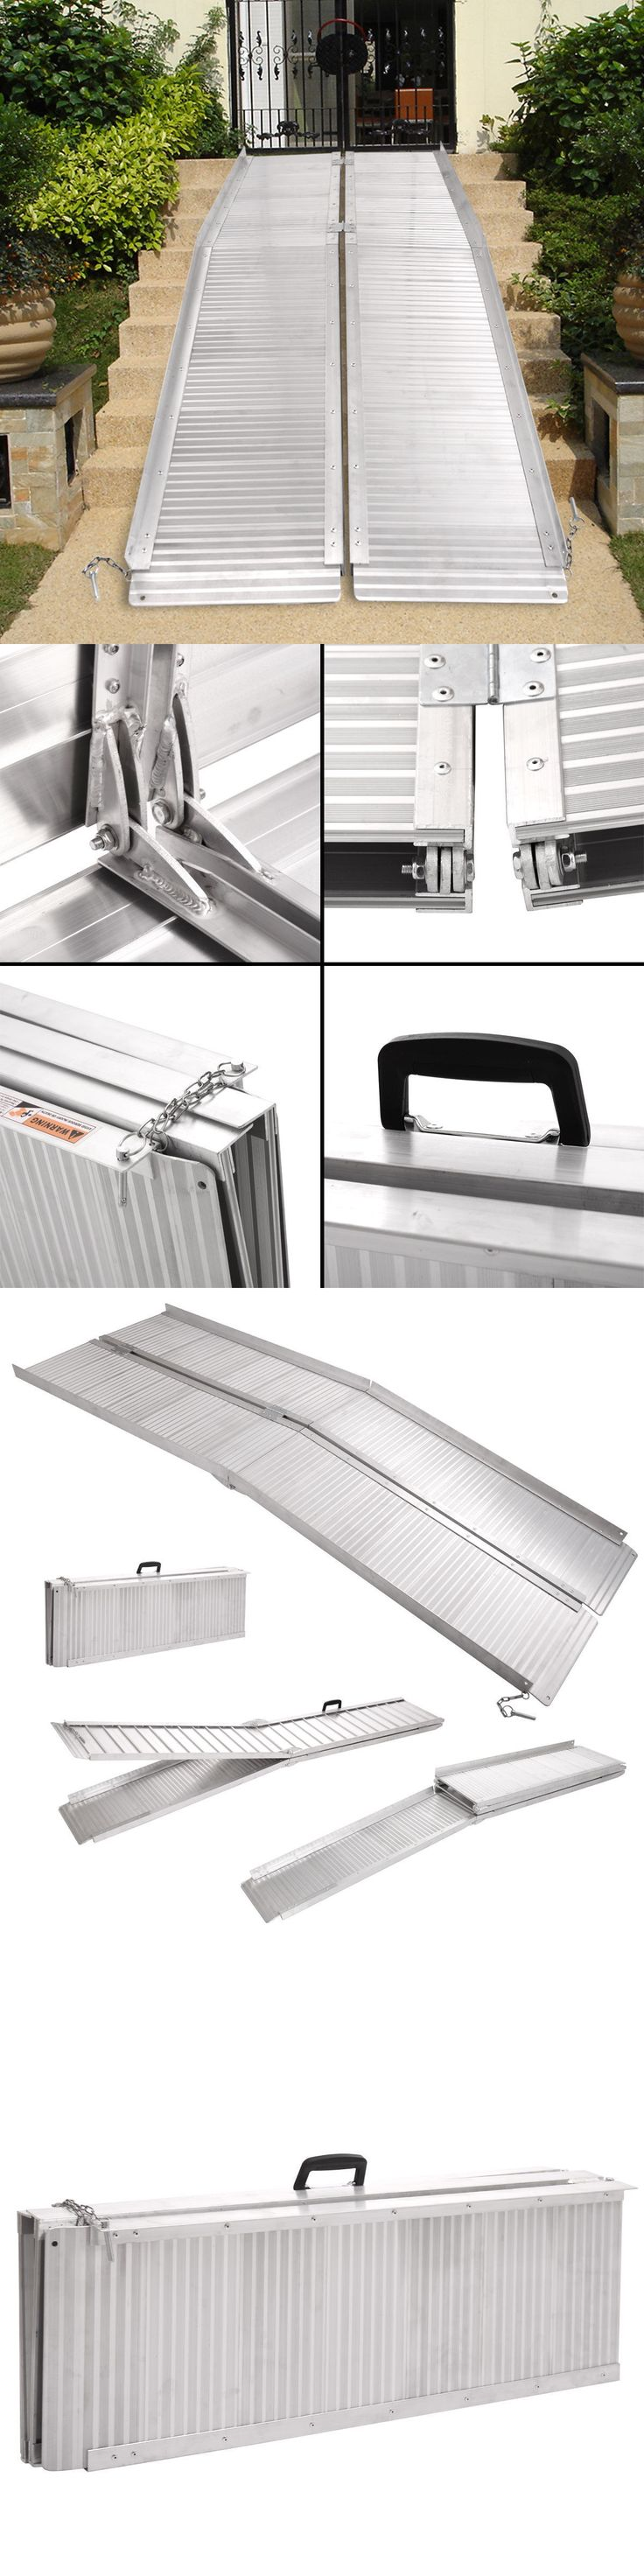 Access Ramps: 7 Aluminum Fold Portable Wheelchair Ramp Mobility Handicap Suitcase Non-Slip BUY IT NOW ONLY: $167.99